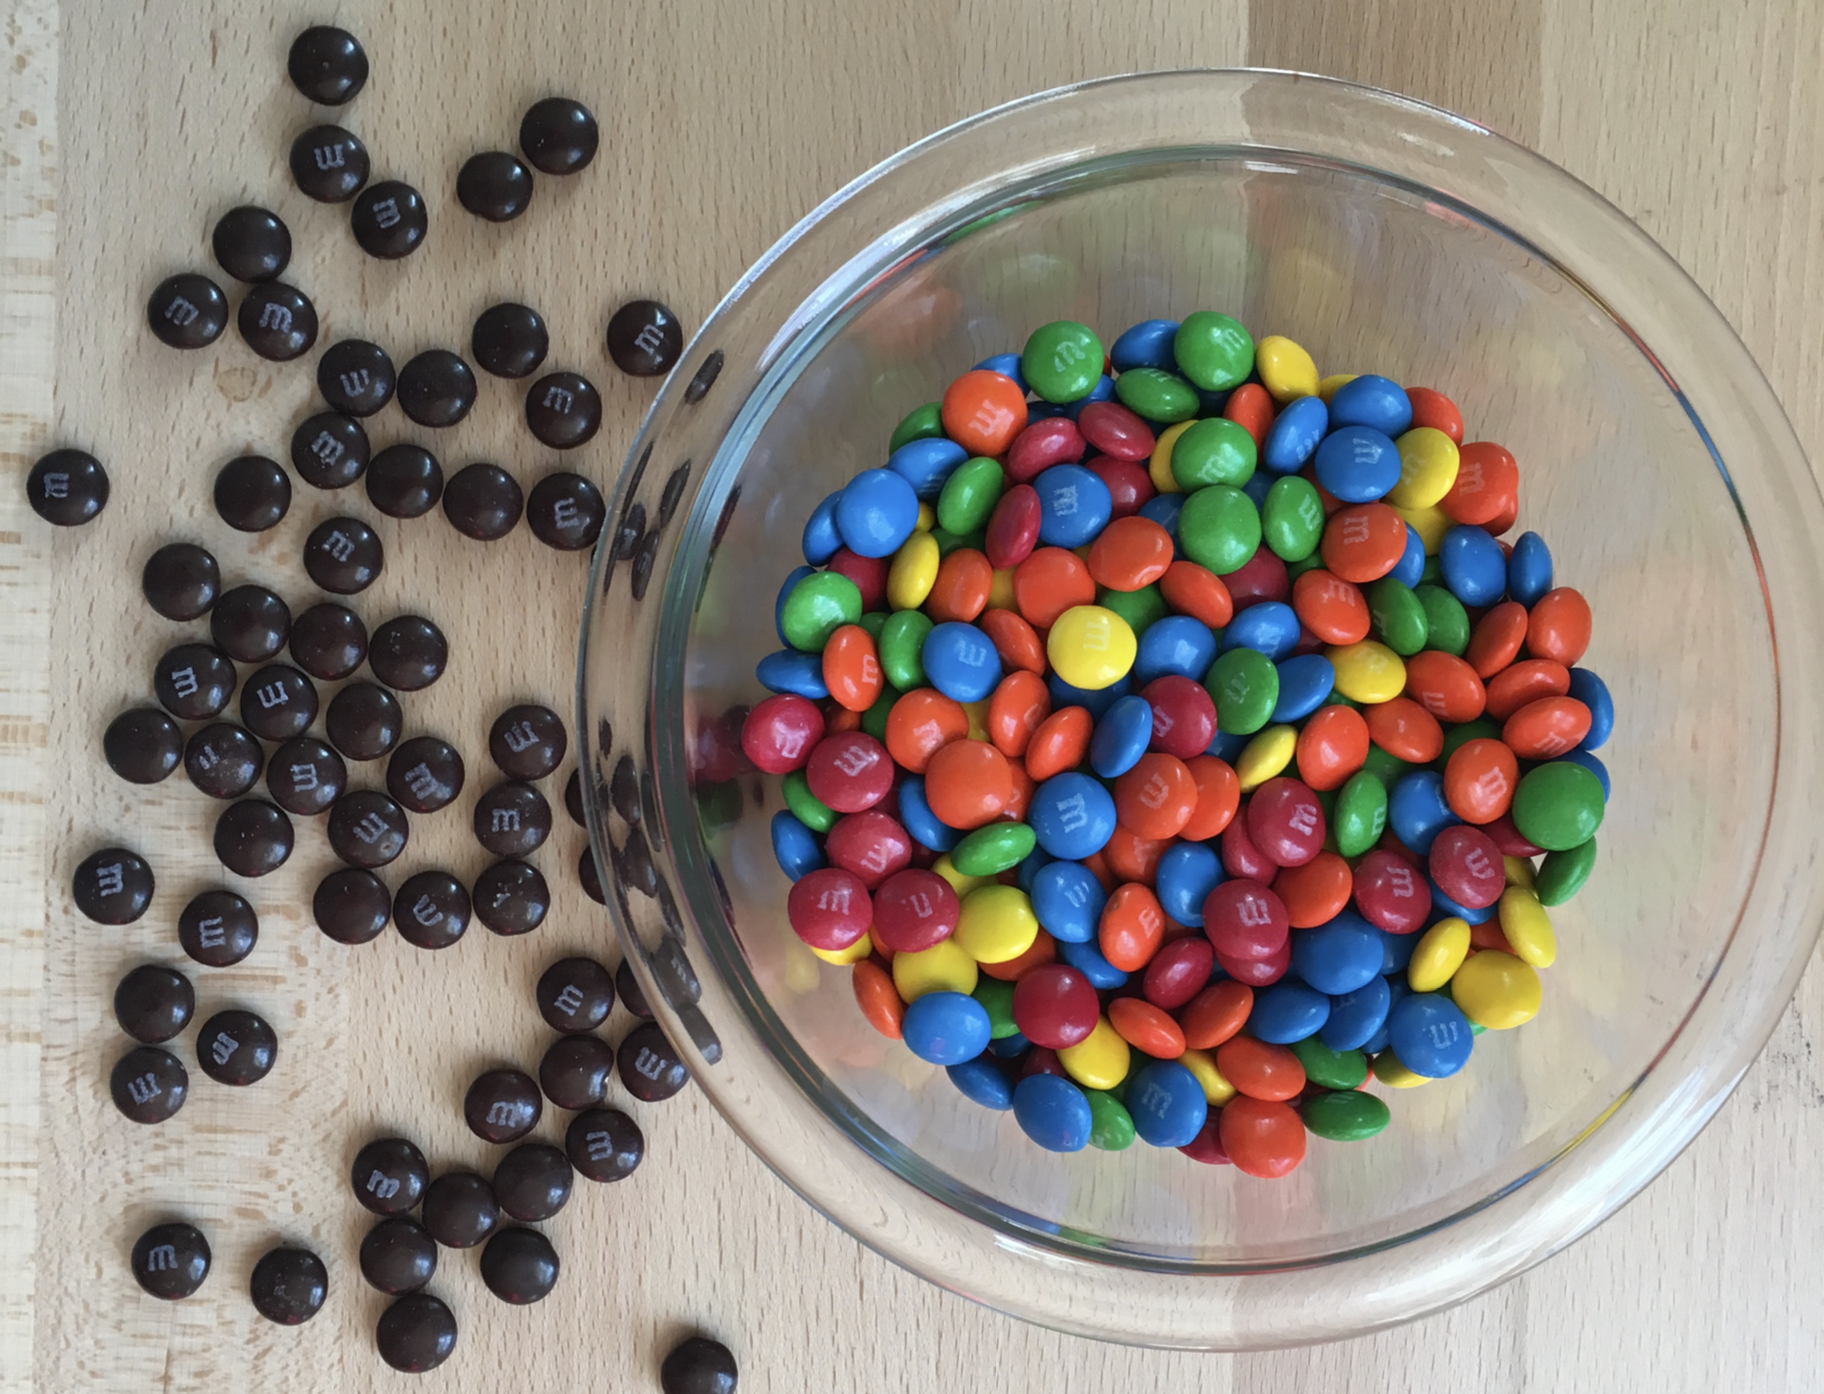 What Do PR and Brown M&Ms Have in Common?